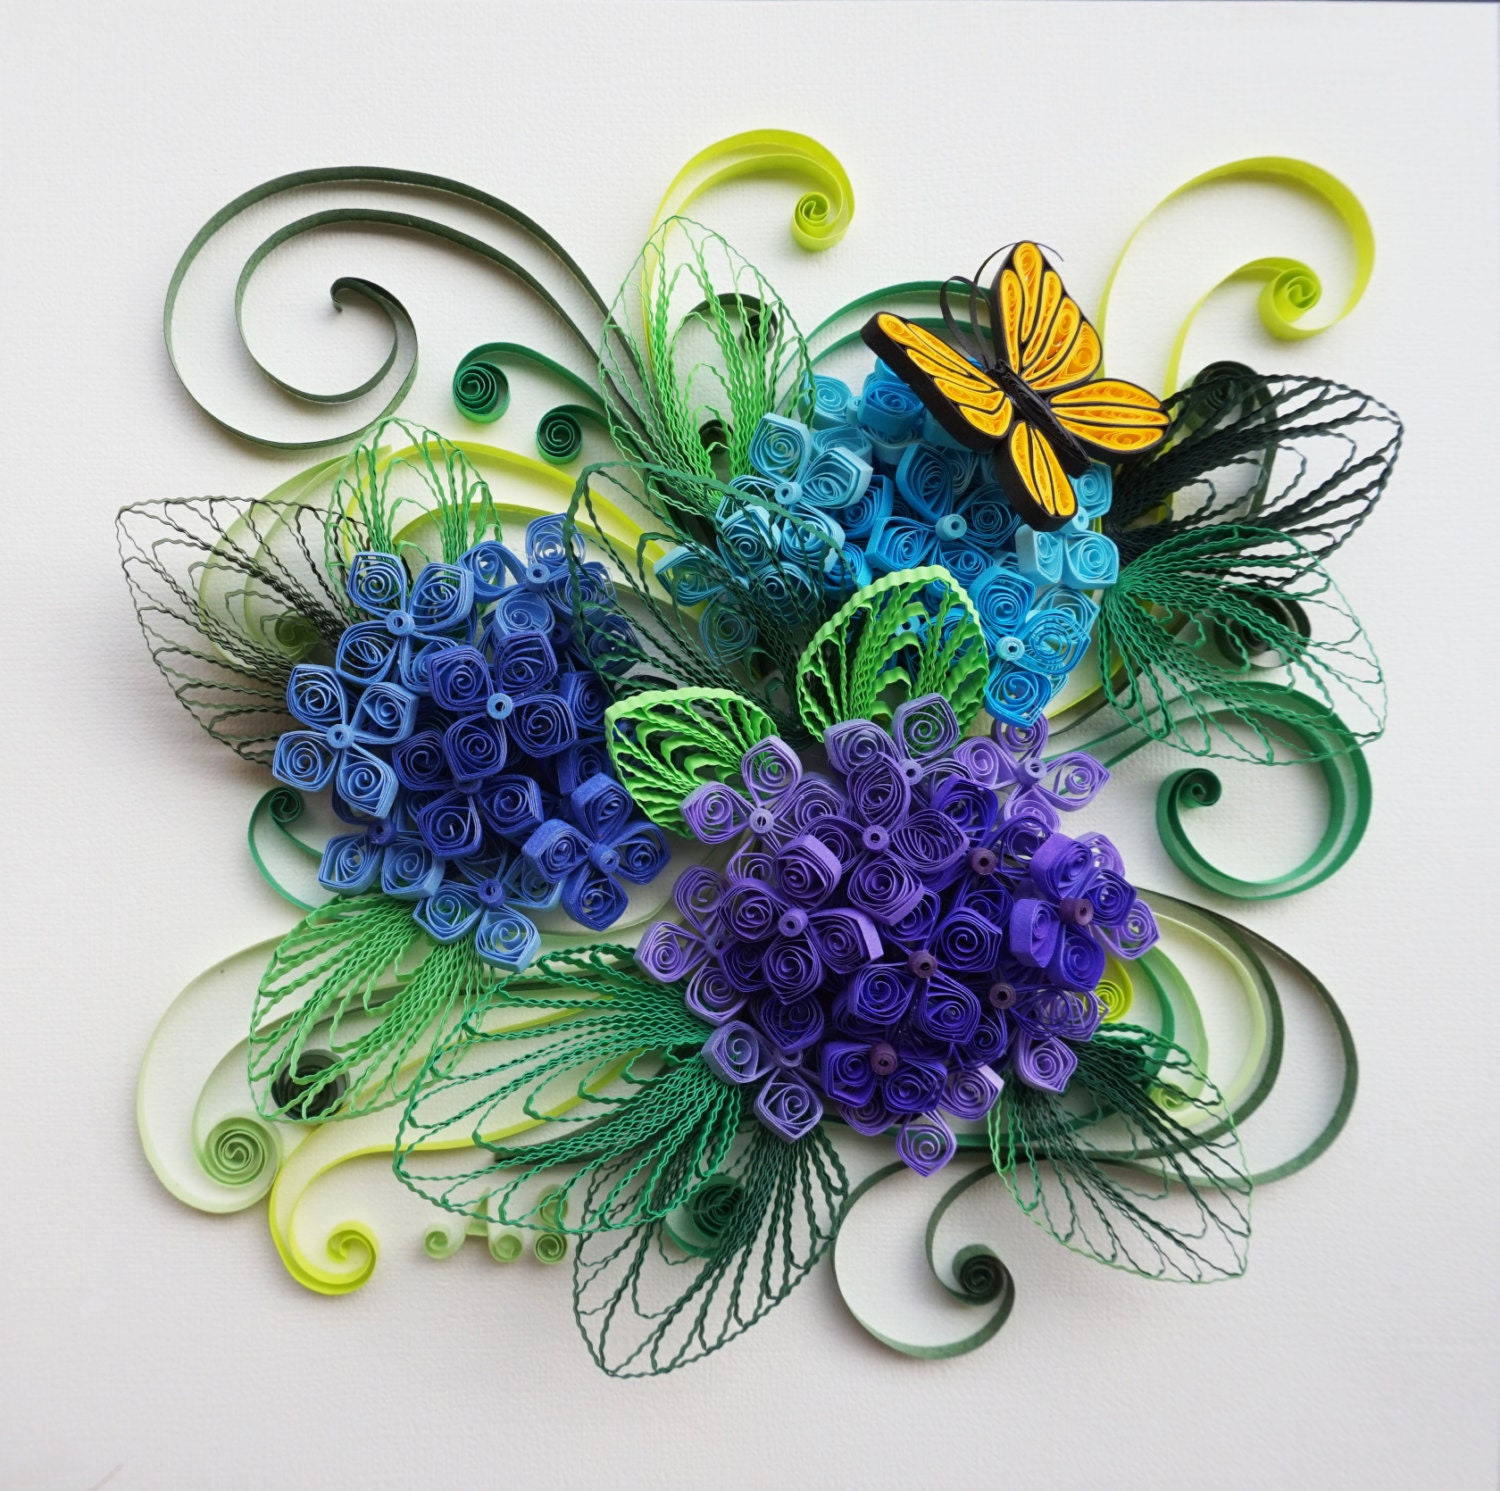 Handmade paper quilling hydrangeas framed in shadow box for Quilling paper craft